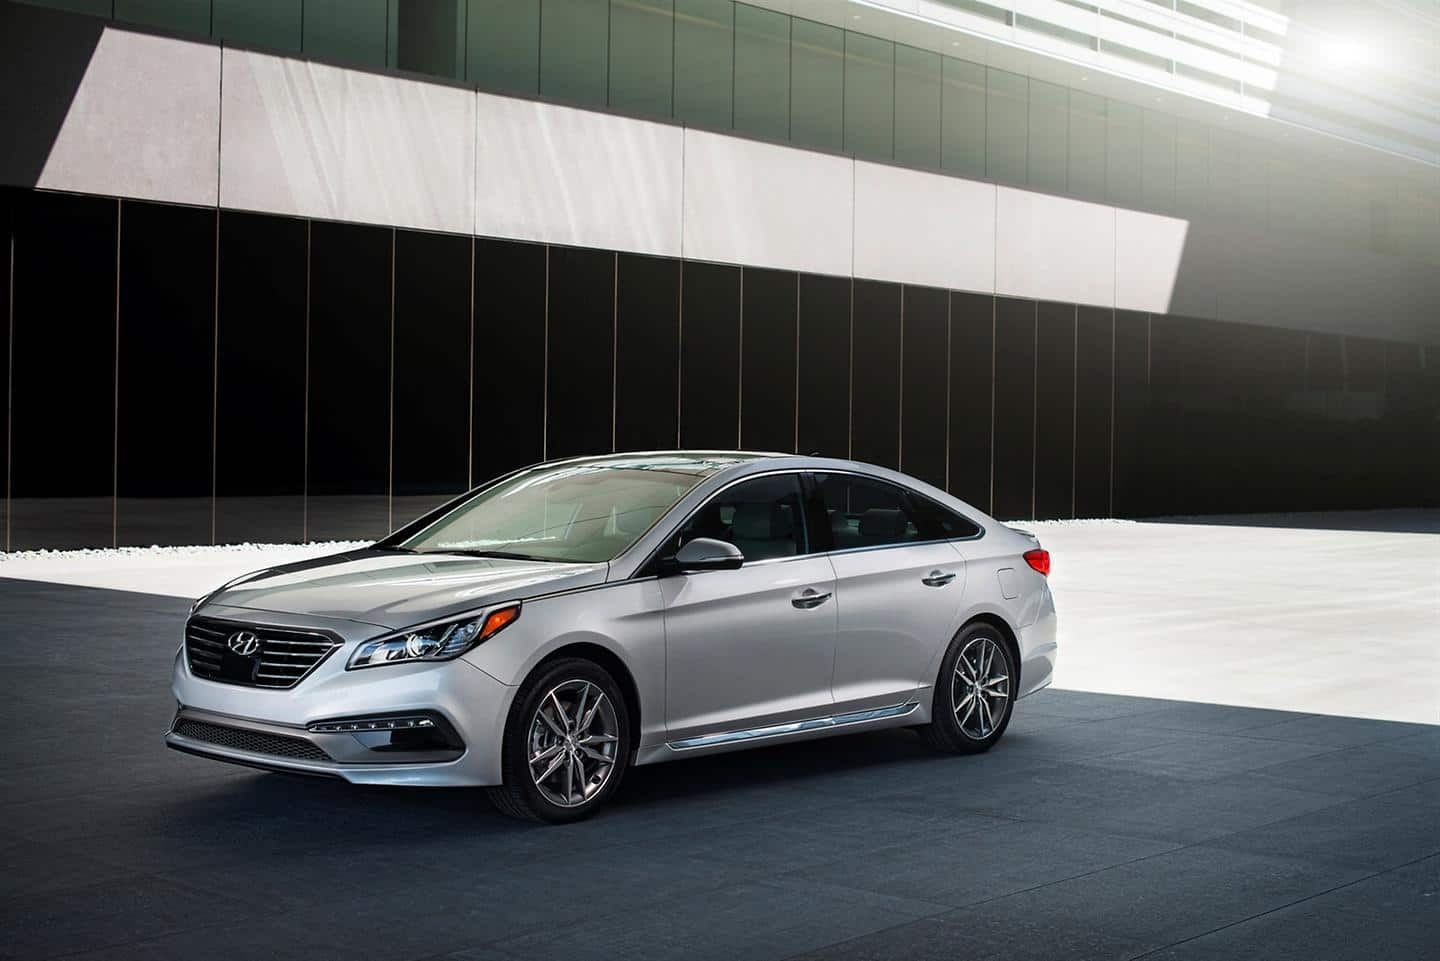 2015 SONATA AWARDED AN INSURANCE INSTITUTE FOR HIGHWAY SAFETY TOP SAFETY PICK,